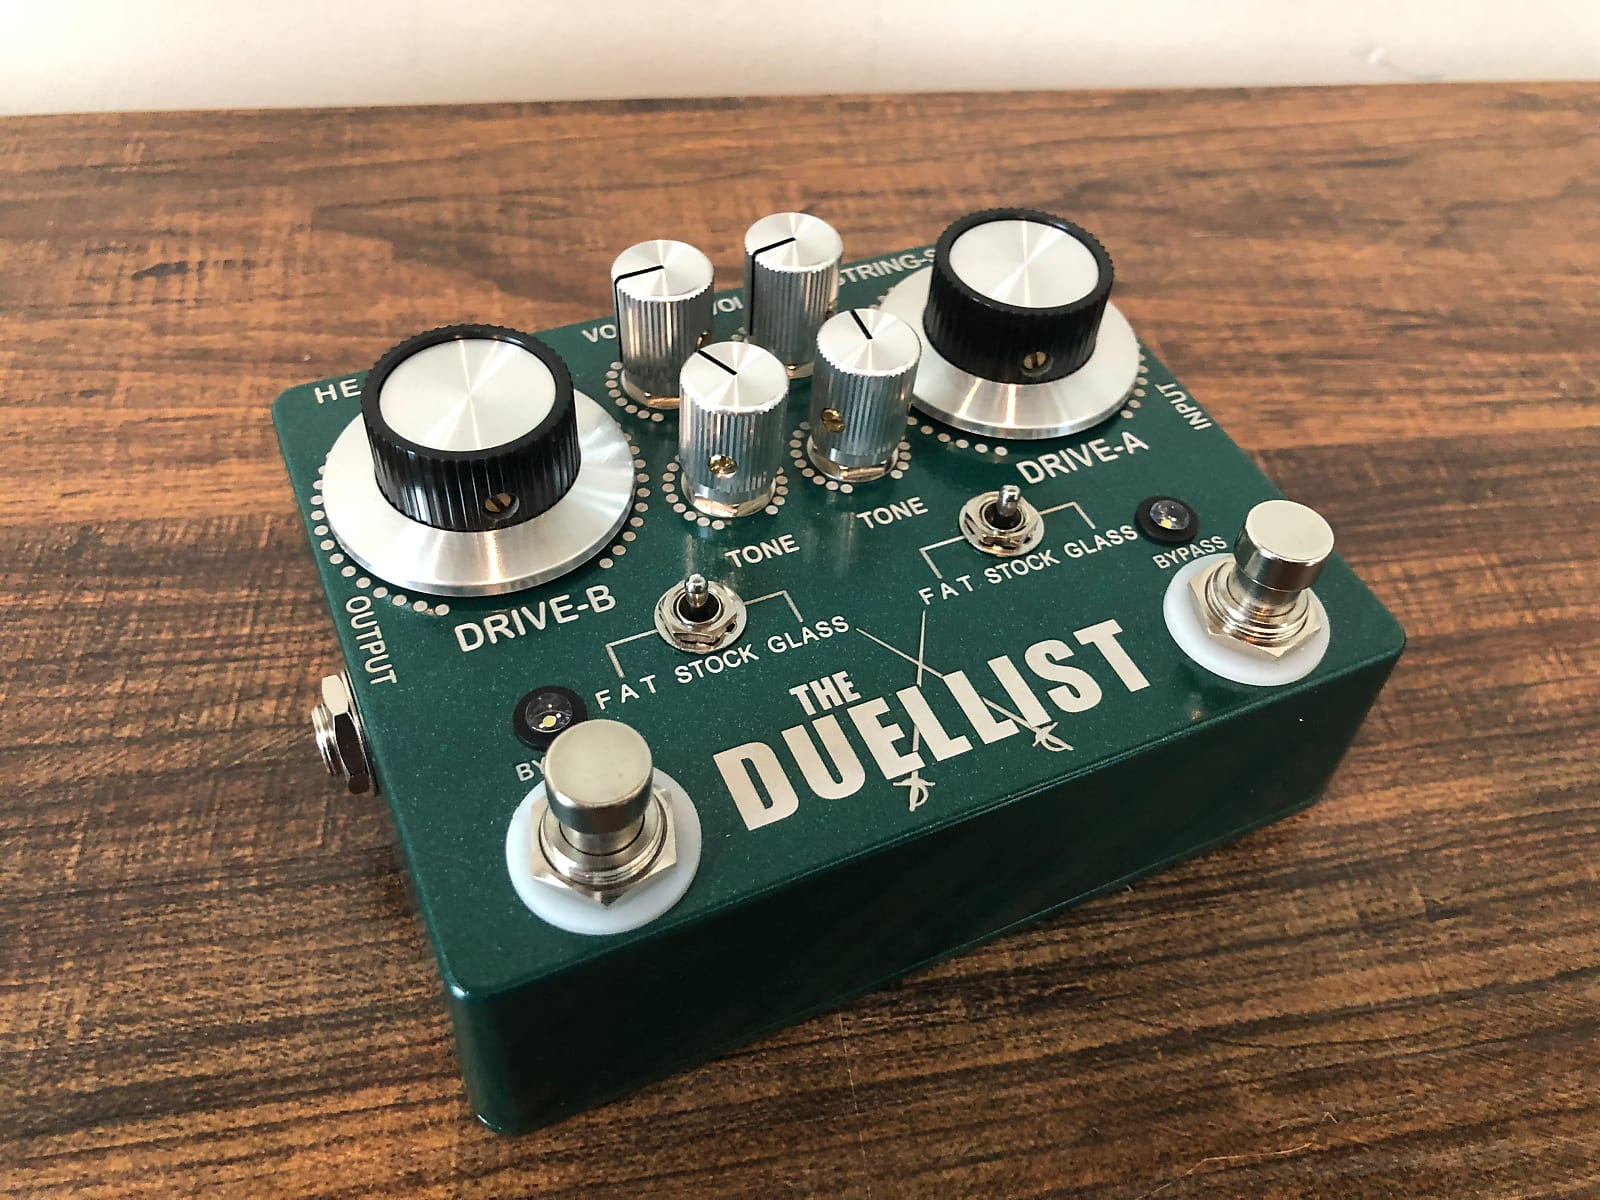 King Tone Guitar Limited Edition of 100 made T.S.  GREEN The Duellist Dual Overdrive by Jesse Davey